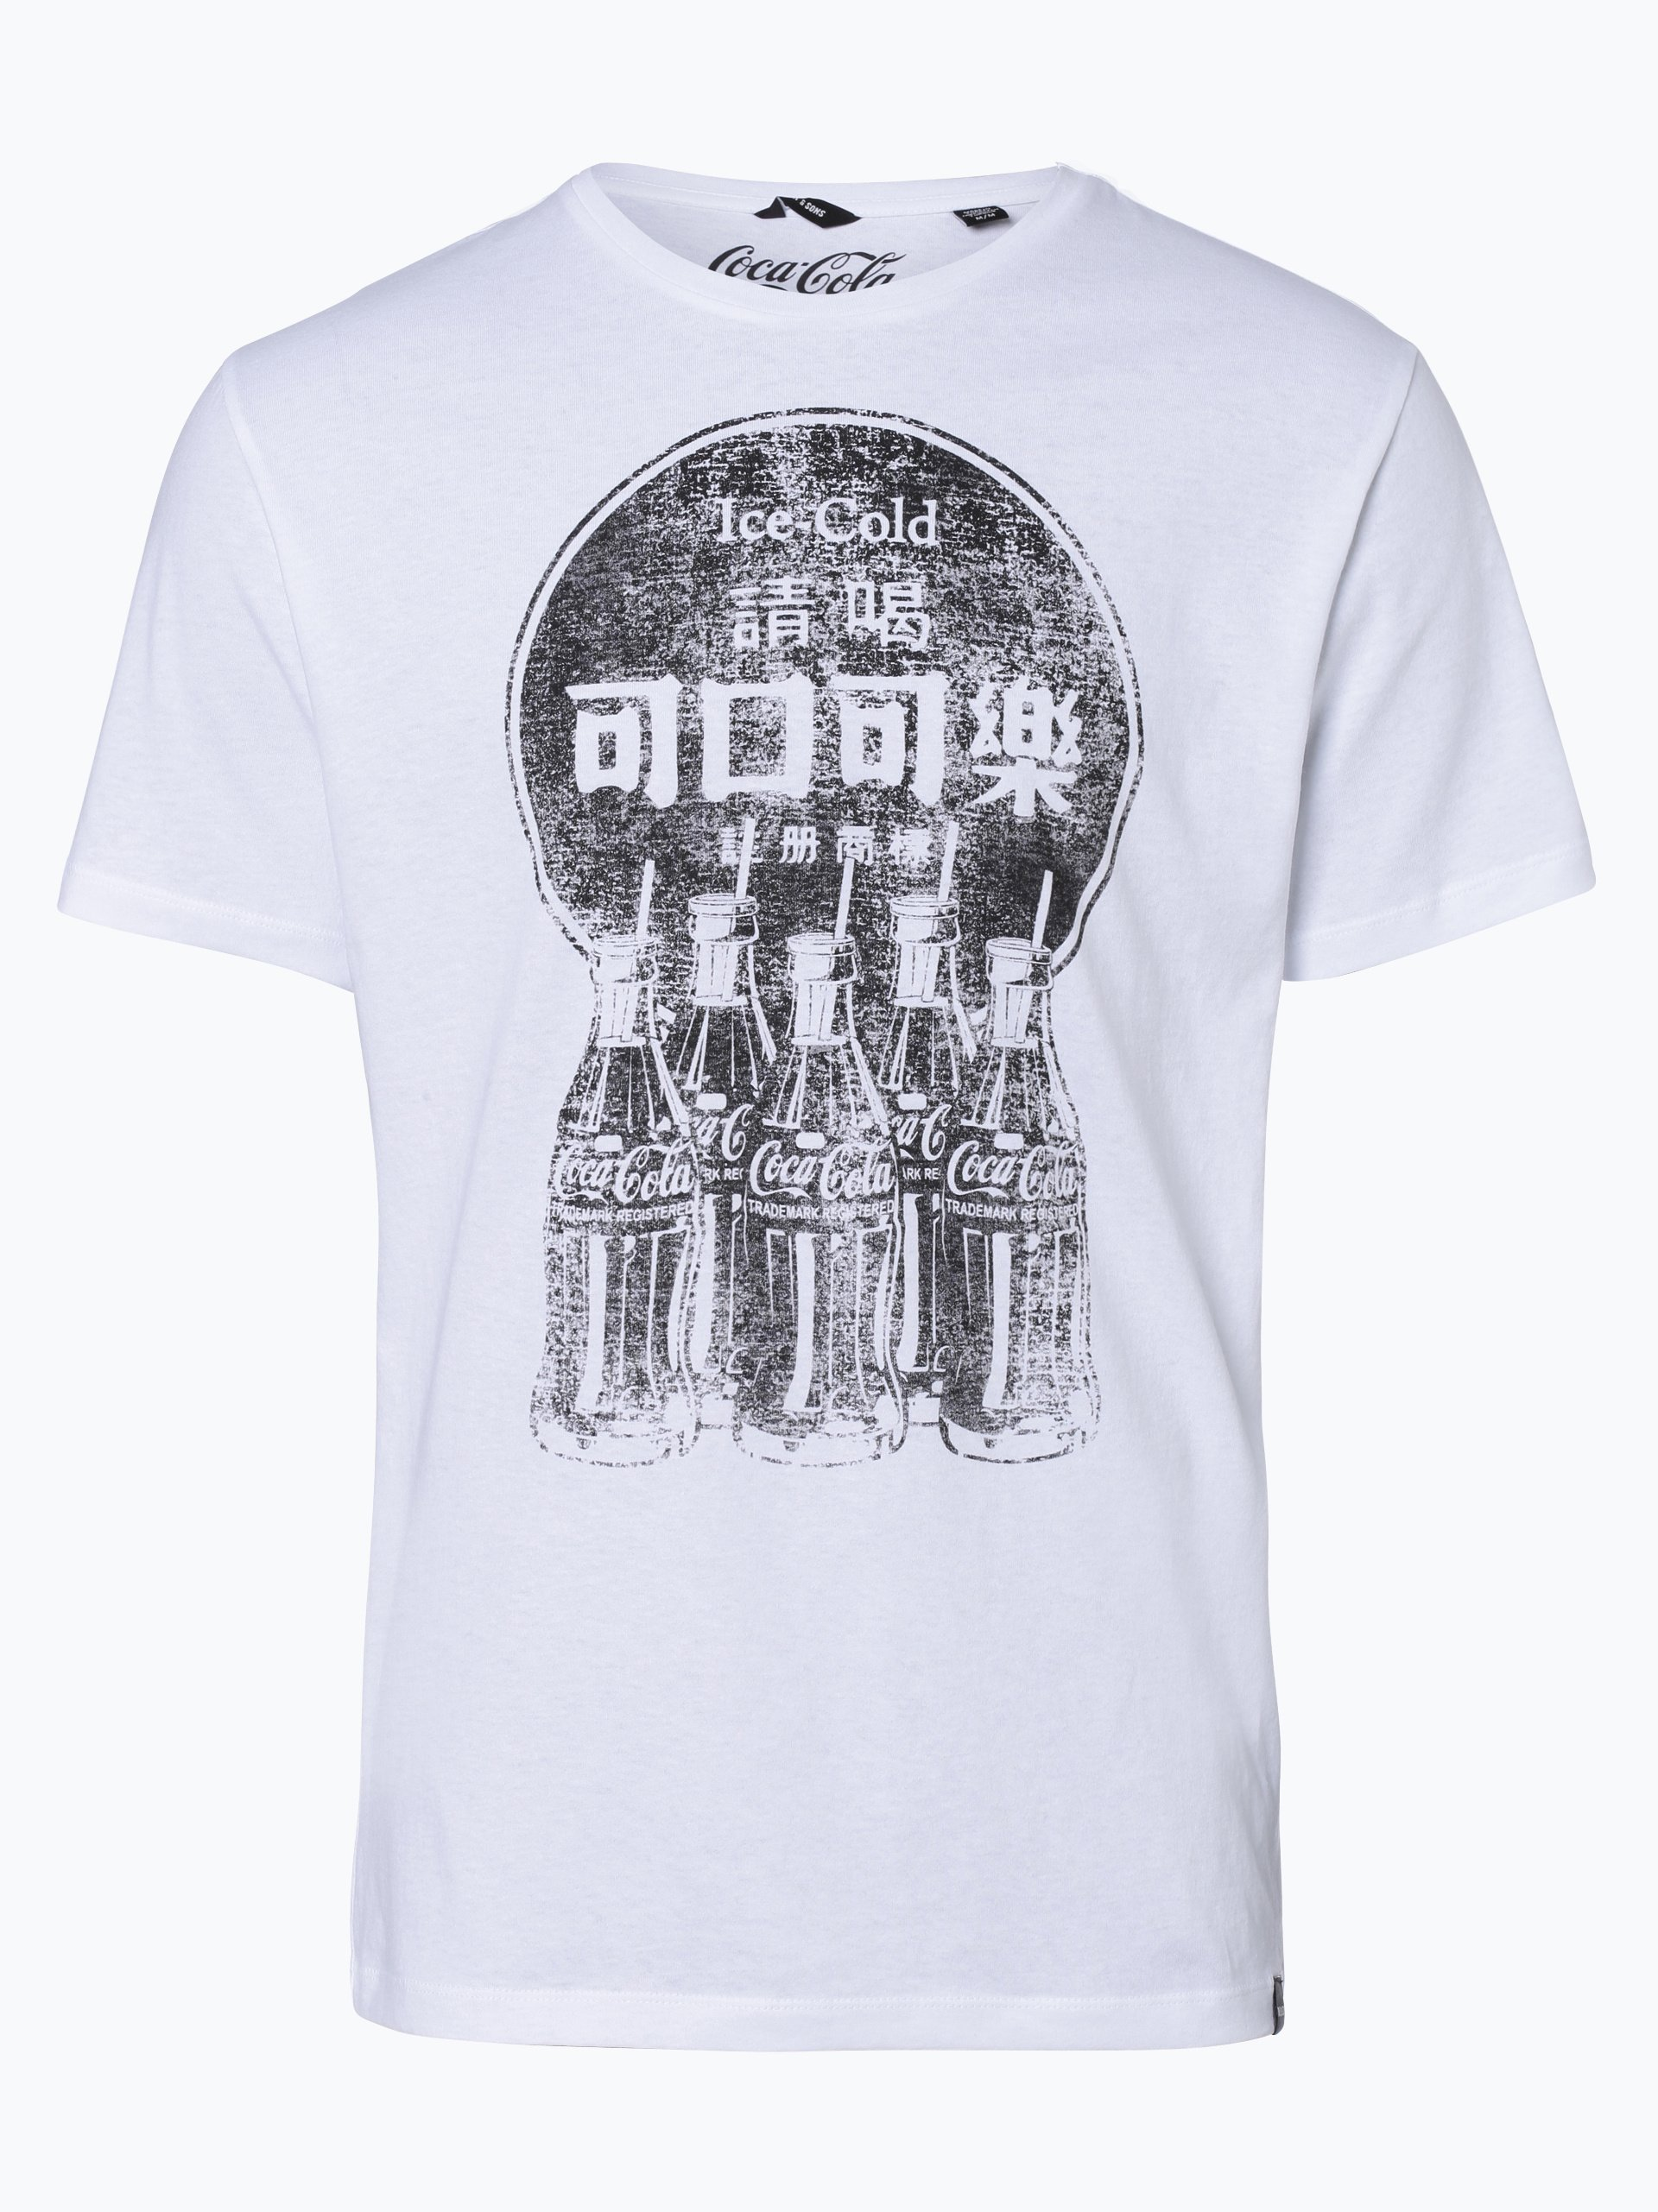 Only&Sons T-shirt męski – Coca Cola Vintage Tee